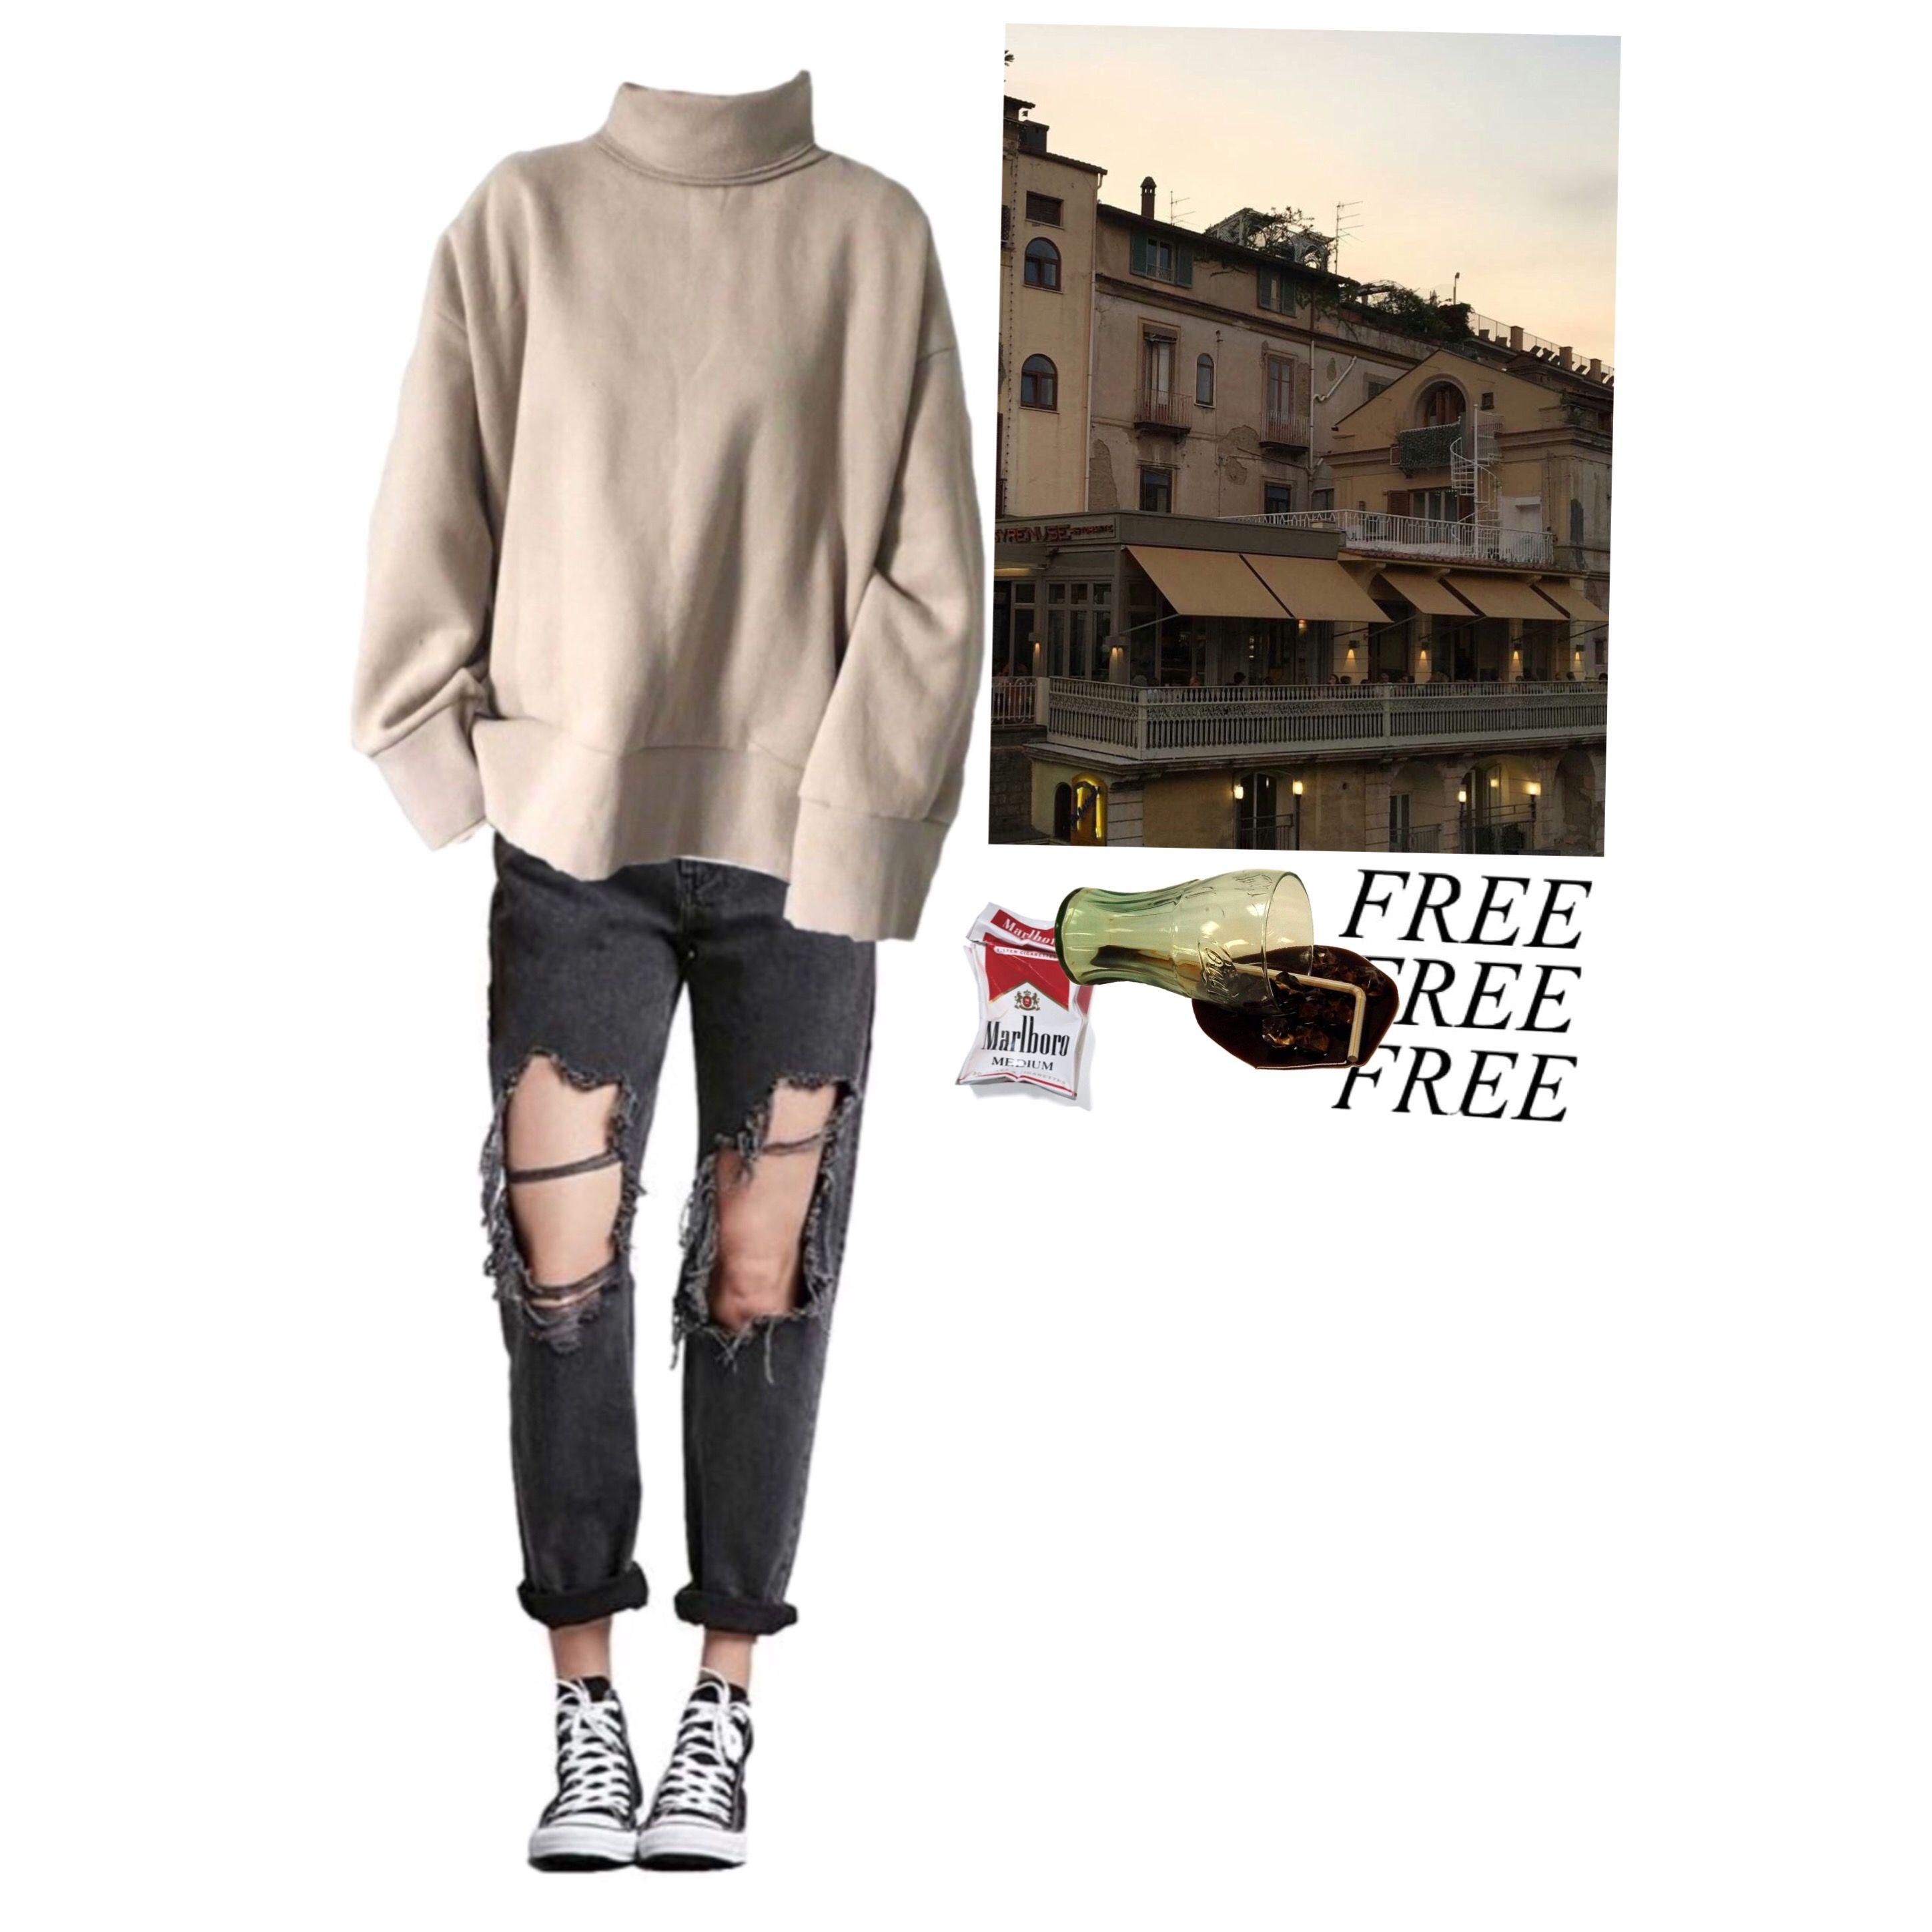 44cc69273bf0 Polyvore Casual · Everyday Outfits · Instagram.com/cryingcola Outfit by  cryingcola 🍒 Peachcobain on polyvore/pinterest Grunge Outfits